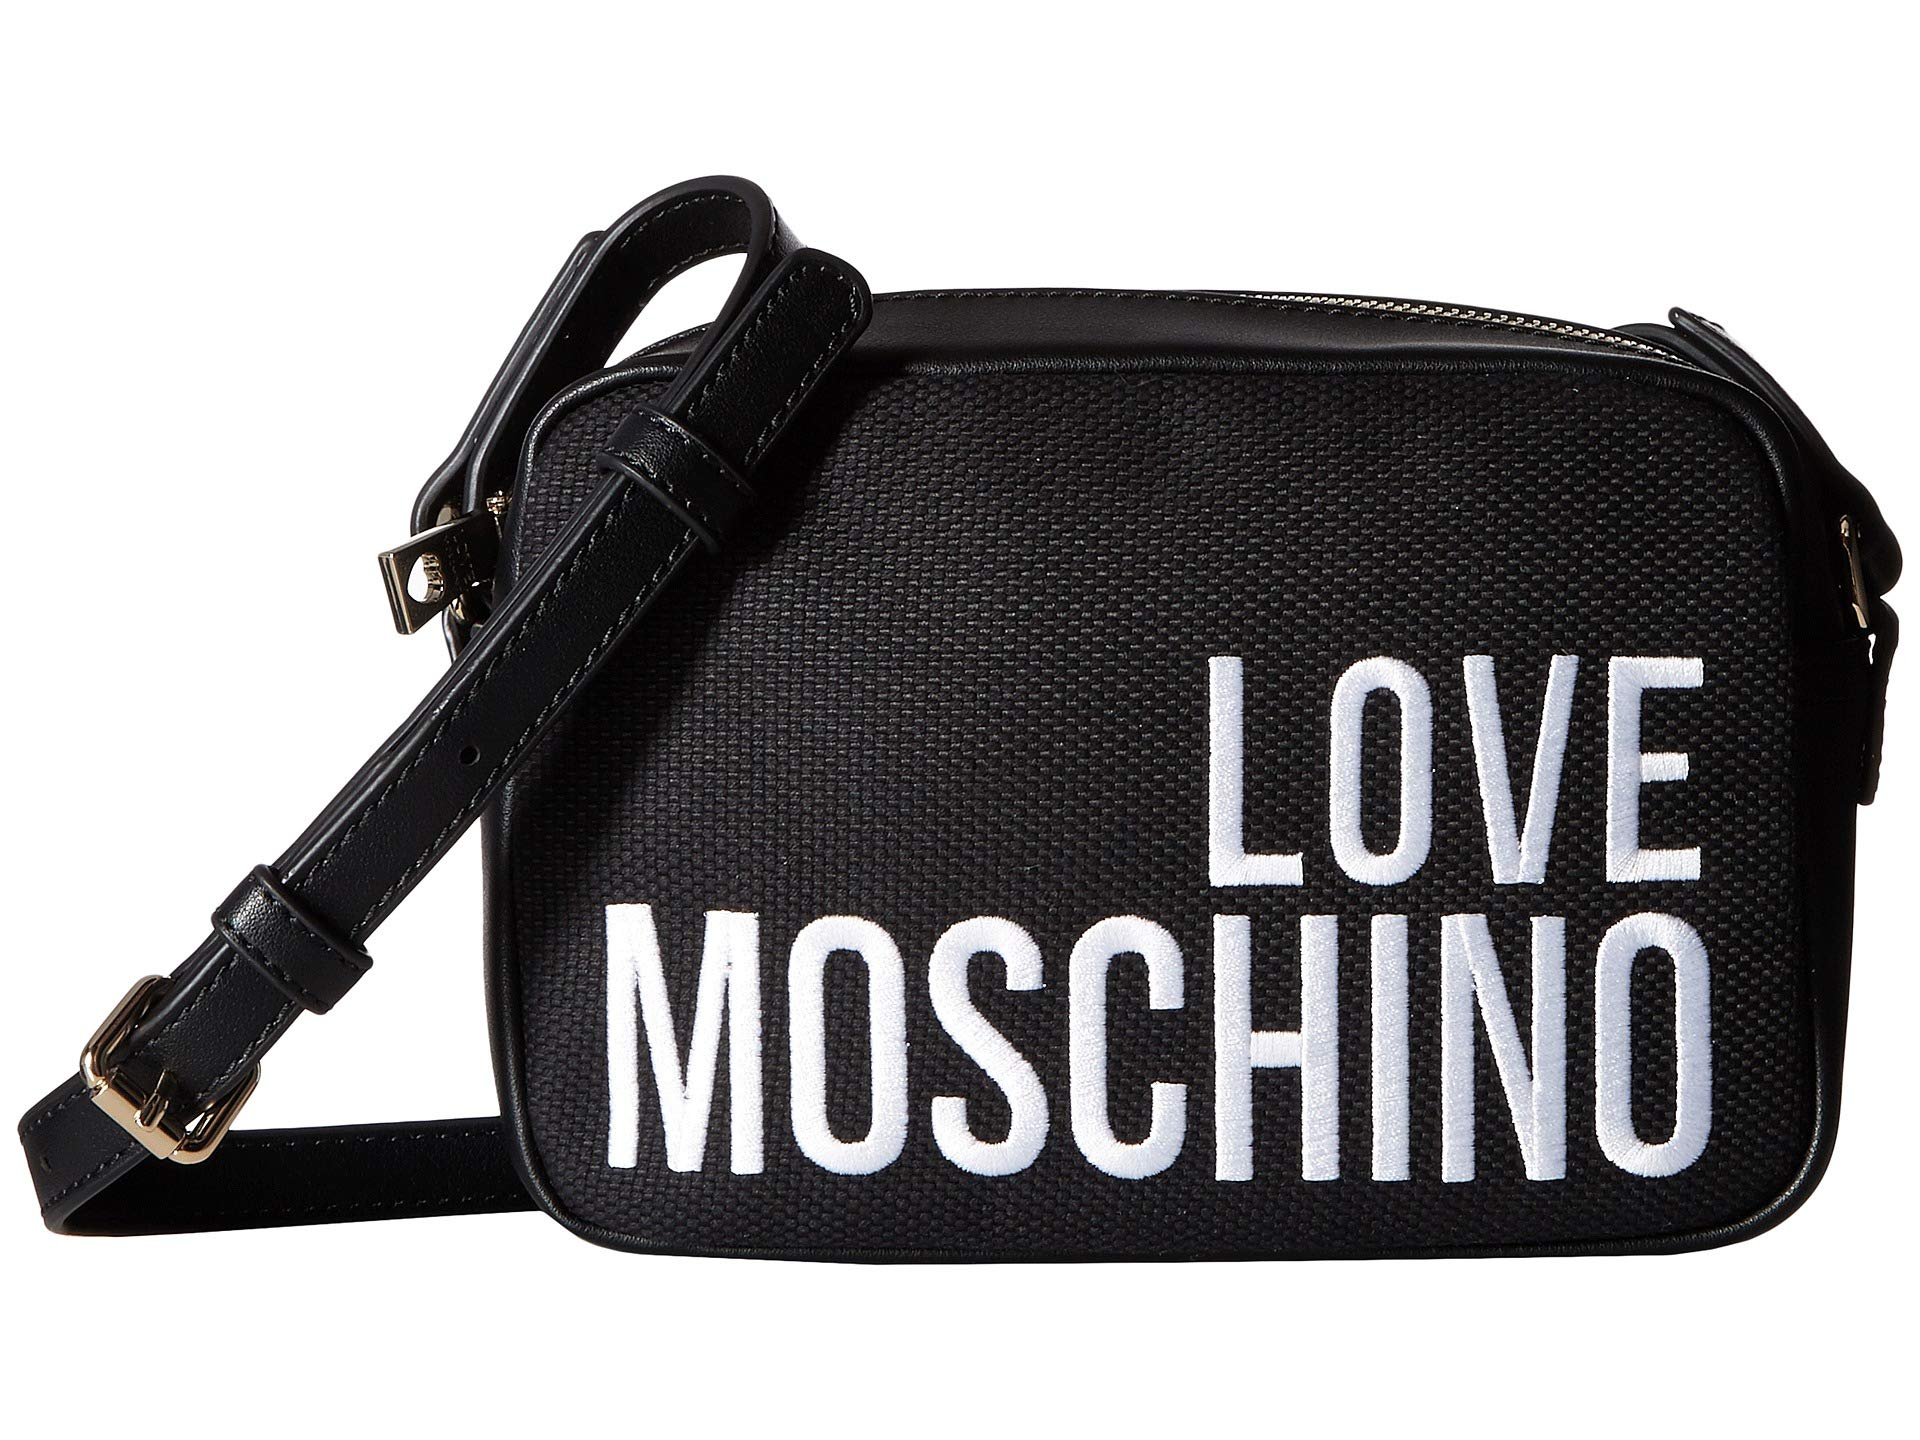 Love Crossbody Embroidery Canvas Moschino Black v1q6OxBw1